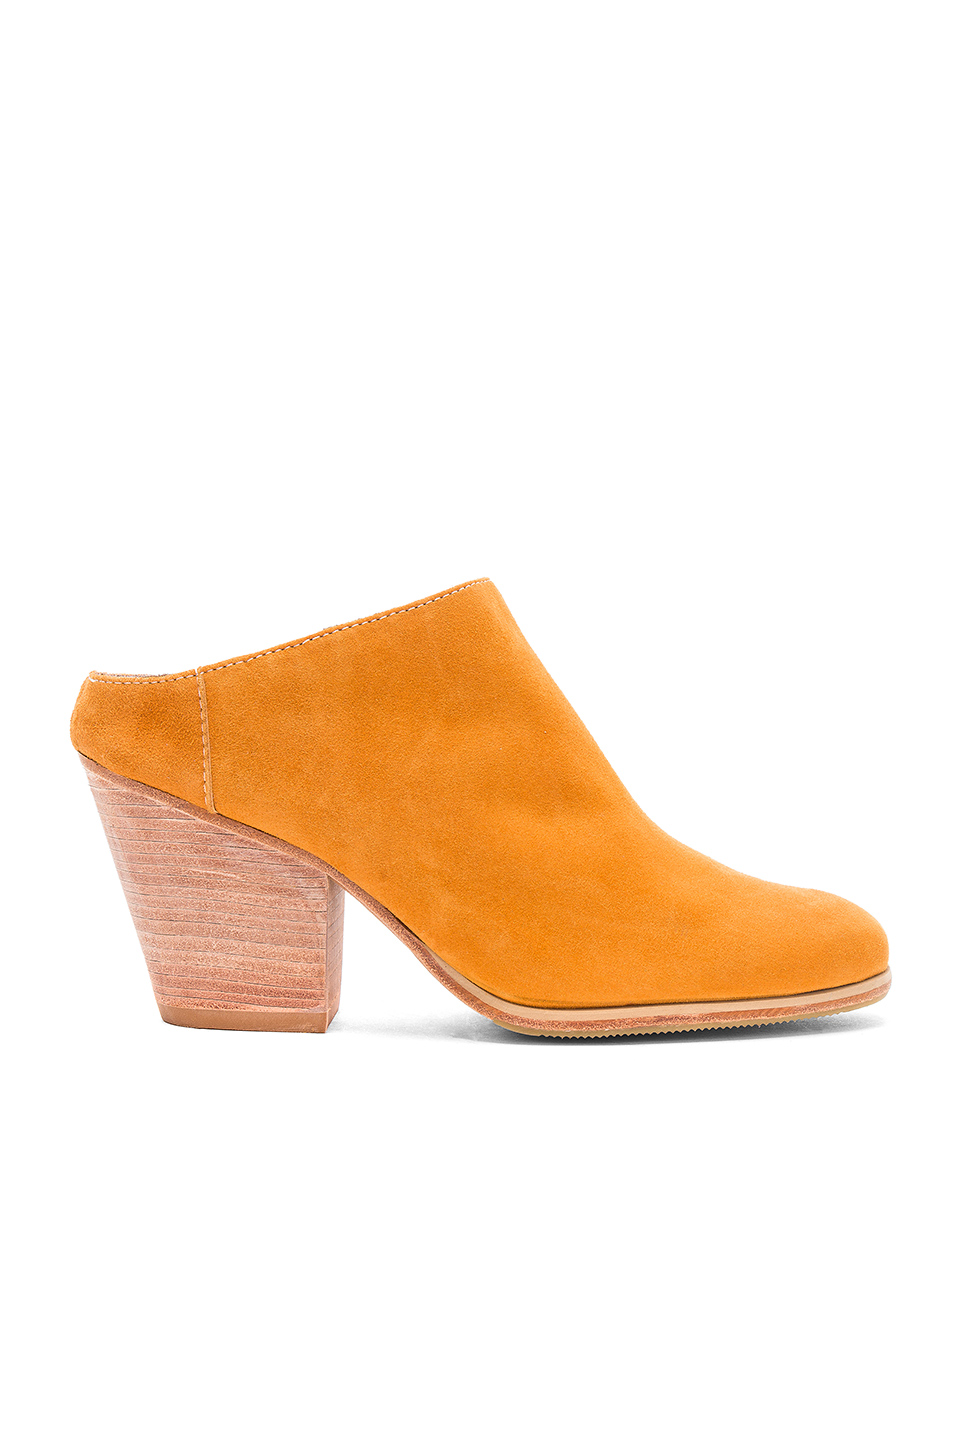 Rachel Comey Mars Mules in Goldenrod Suede